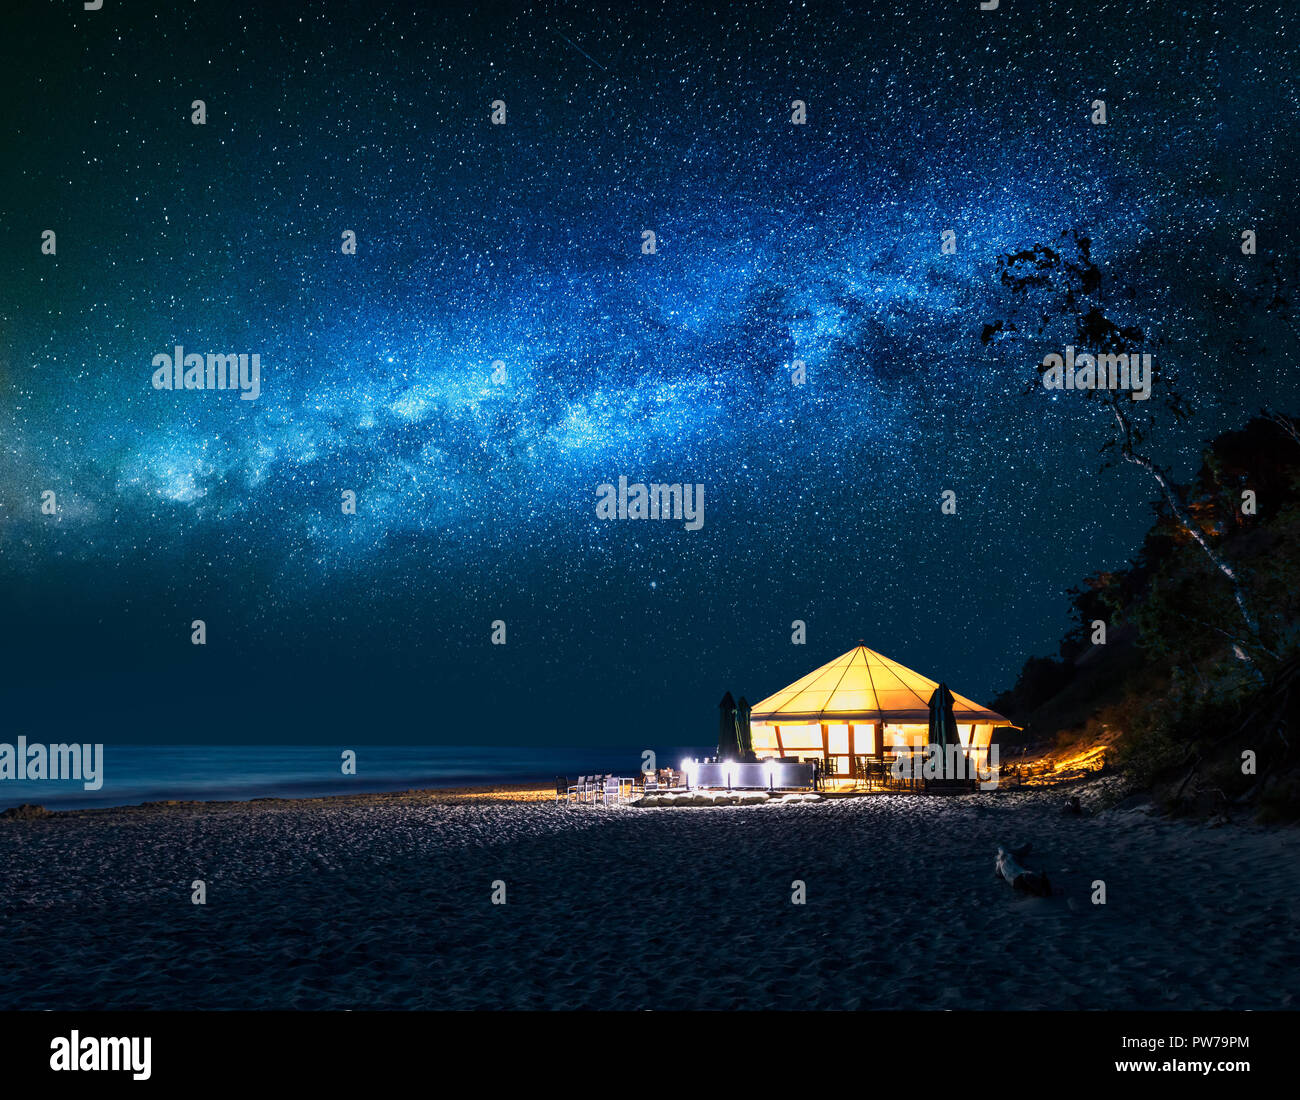 Beach with glowing tent at night with falling stars Stock Photo